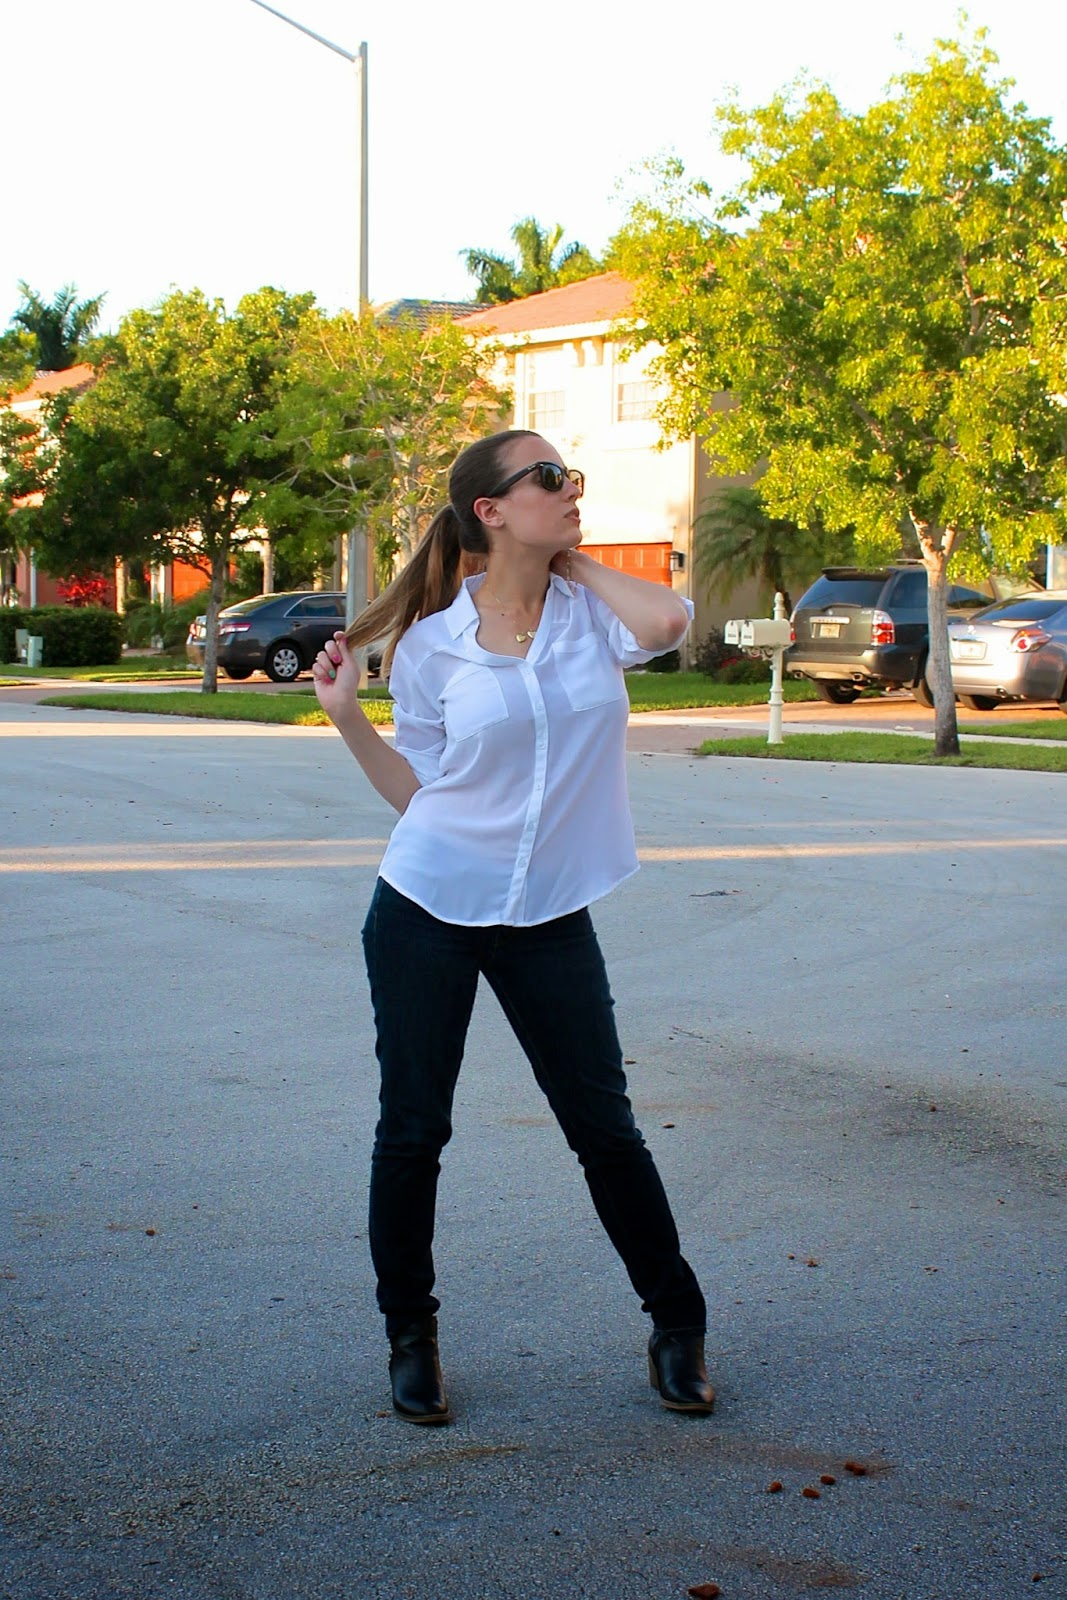 ootd, style, fashion, Miami, classic, tailored, what i wore, Nigeria, Bring Back Our Girls, Express, Levi's, Ray-Ban, Target